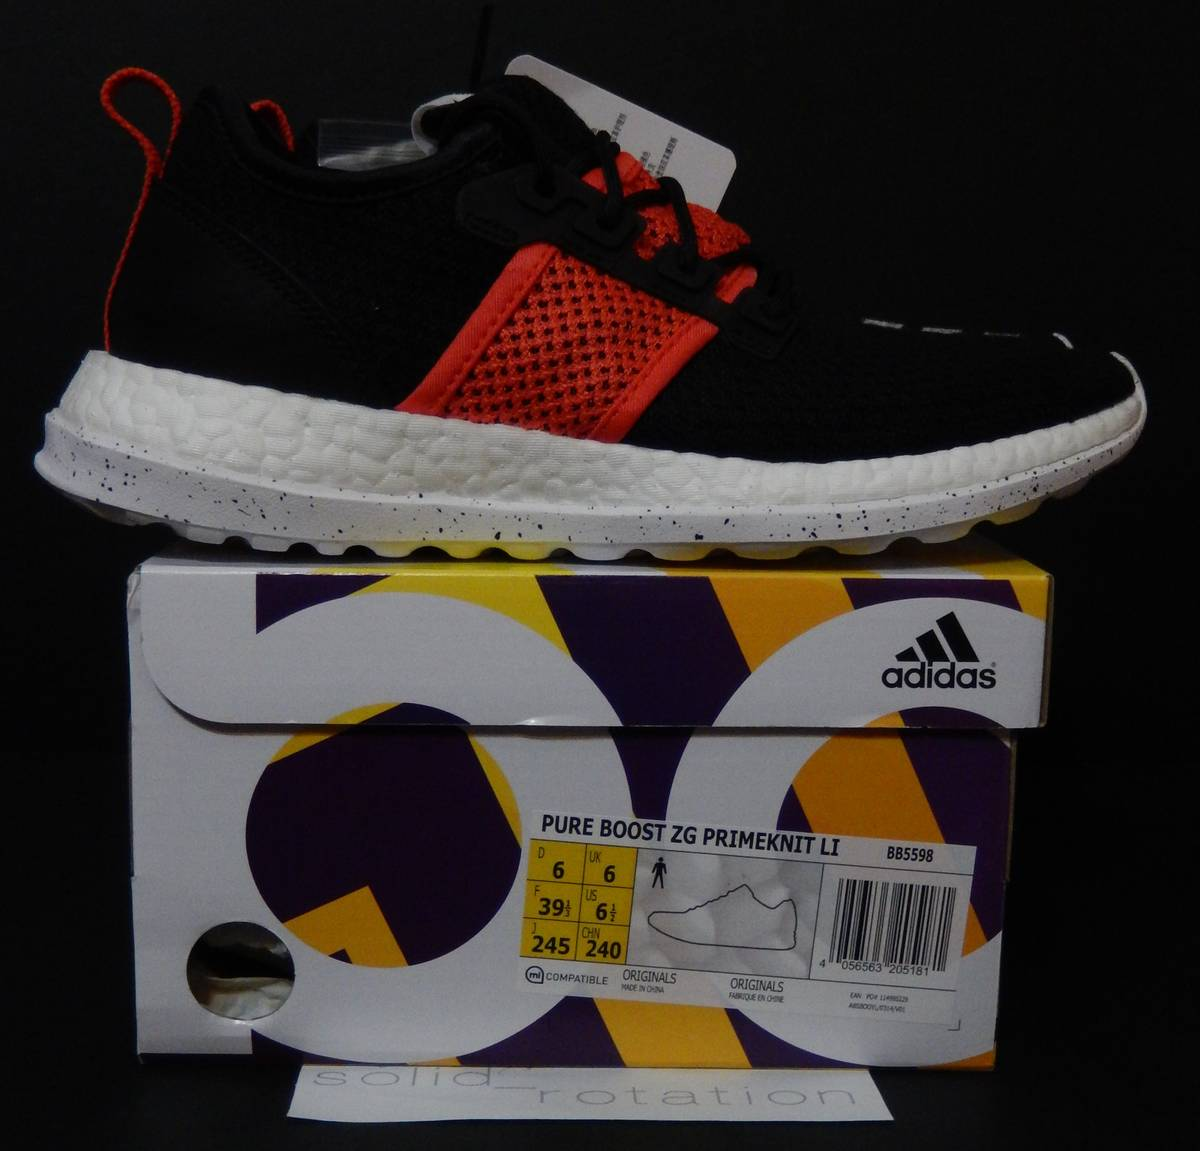 Pure Boost DPR LTD Shoes Adidas